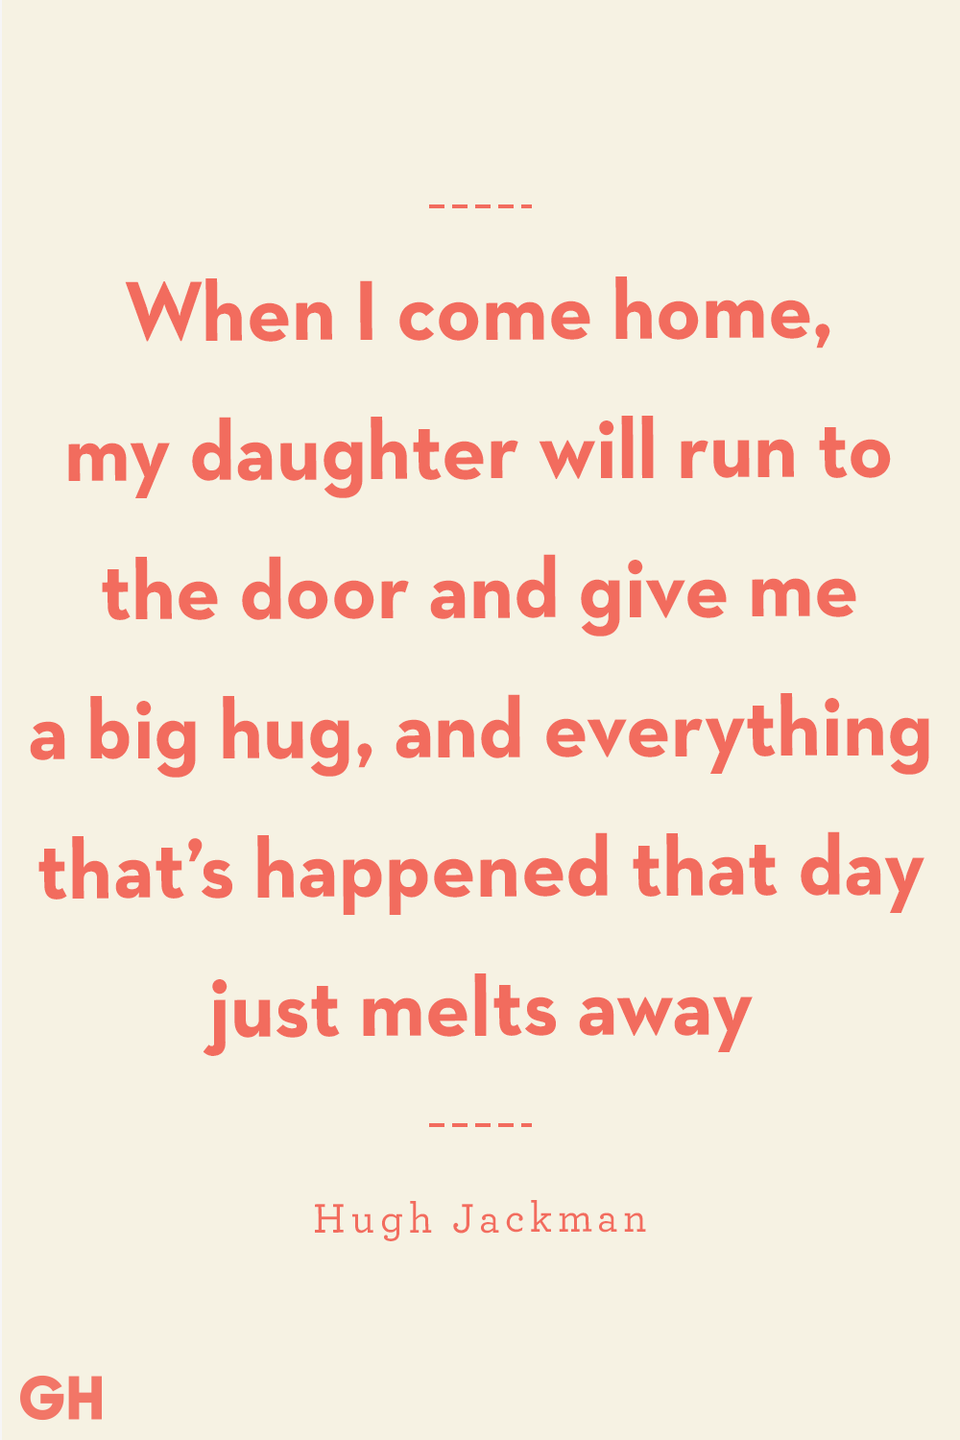 <p>When I come home, my daughter will run to the door and give me a big hug, and everything that's happened that day just melts away.</p>